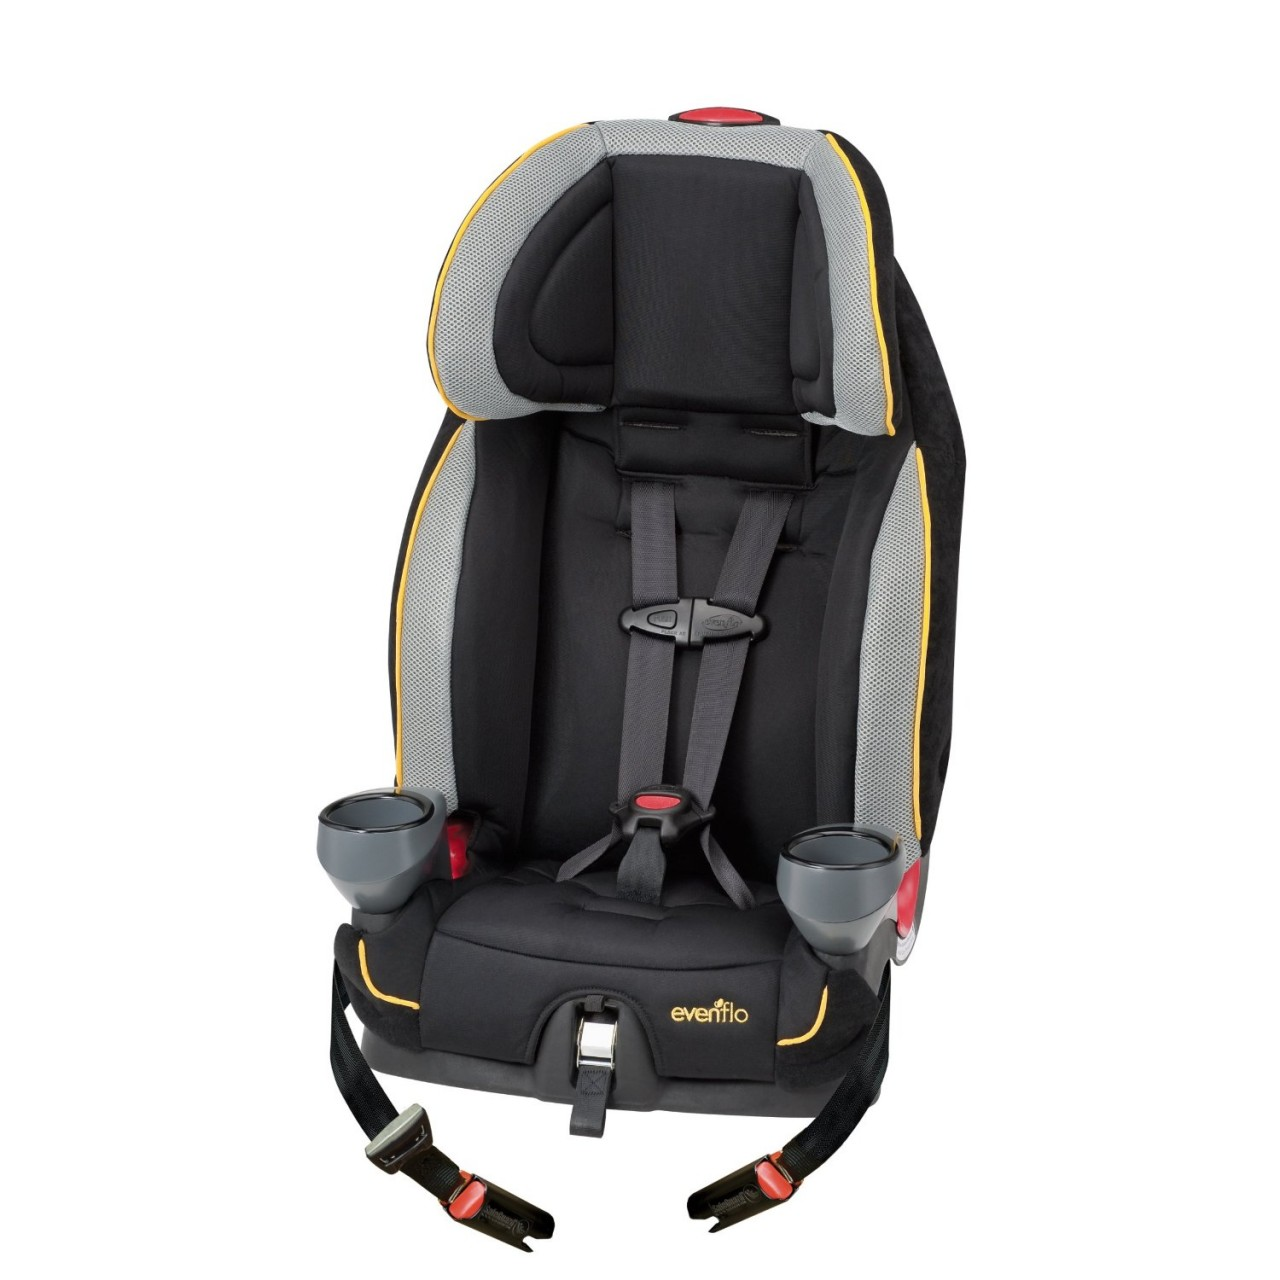 Evenflo High Chair Seat Cover